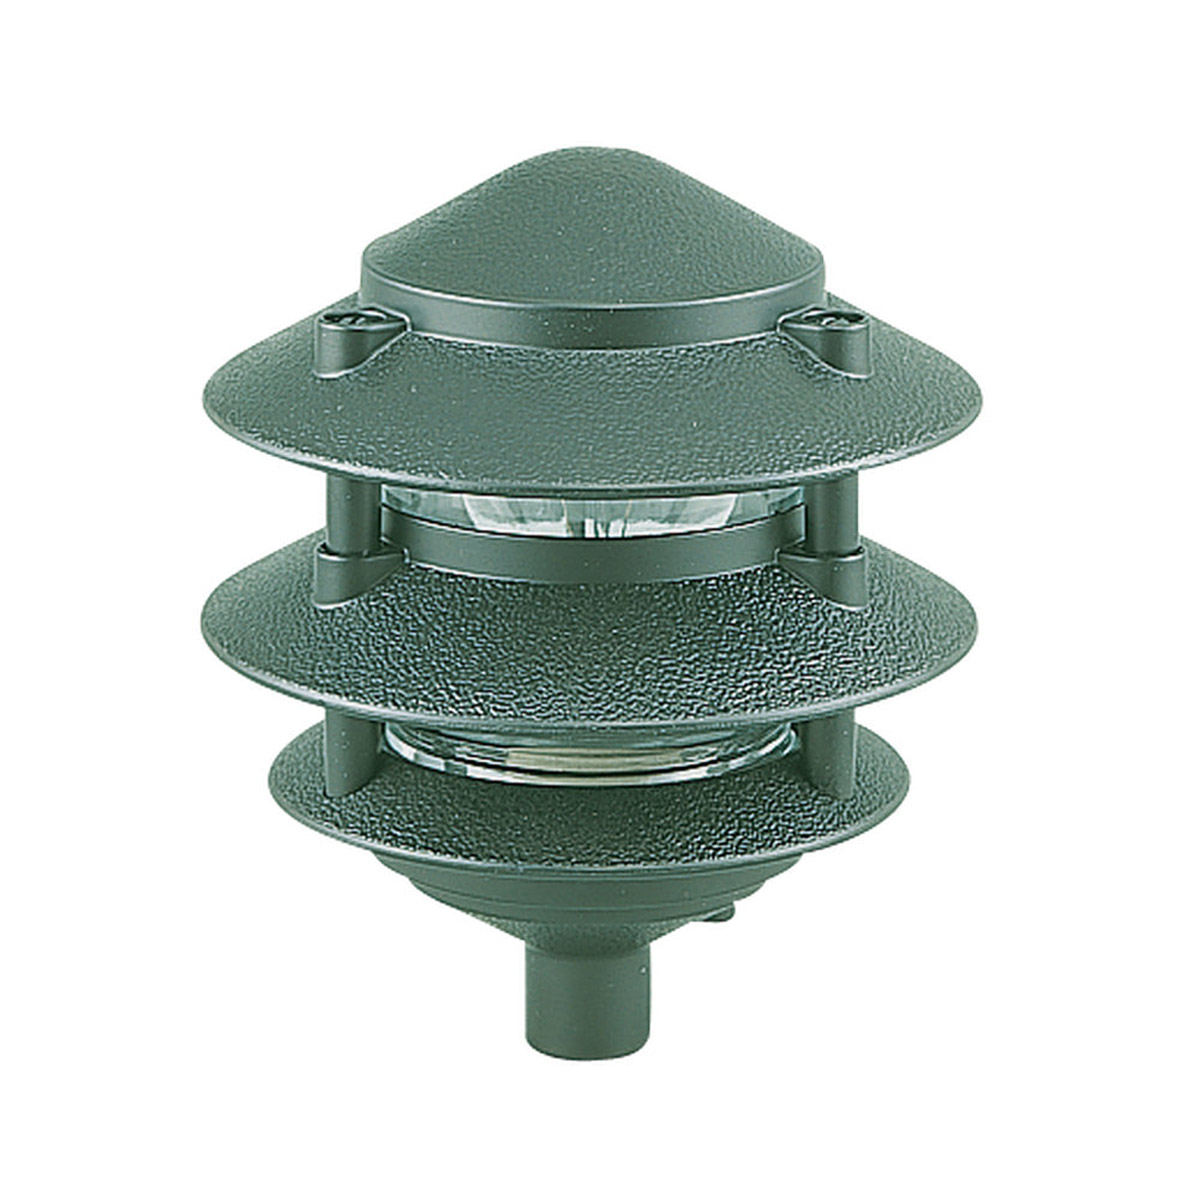 Sea Gull Lighting Landscape Lighting One Light Outdoor Path Fixture in Emerald Green 9226-95